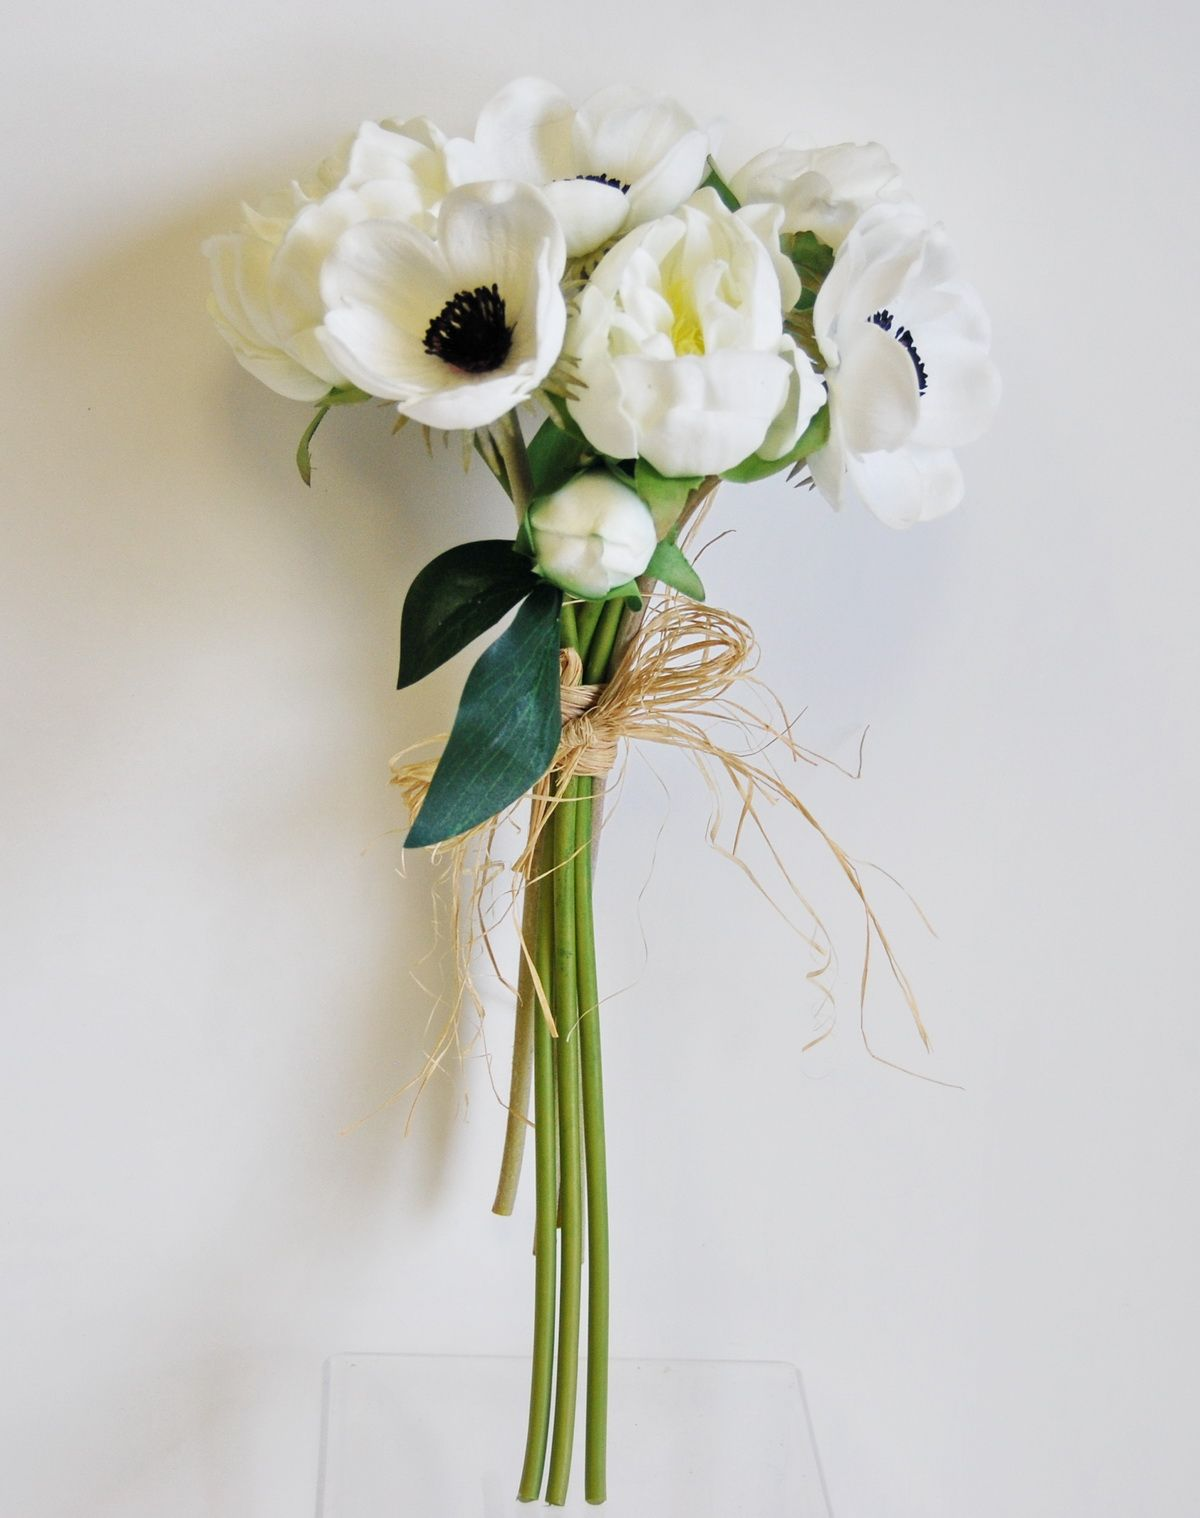 Wb192wh real touch peony anemone bouquet white real touch wb192wh real touch peony anemone bouquet white izmirmasajfo